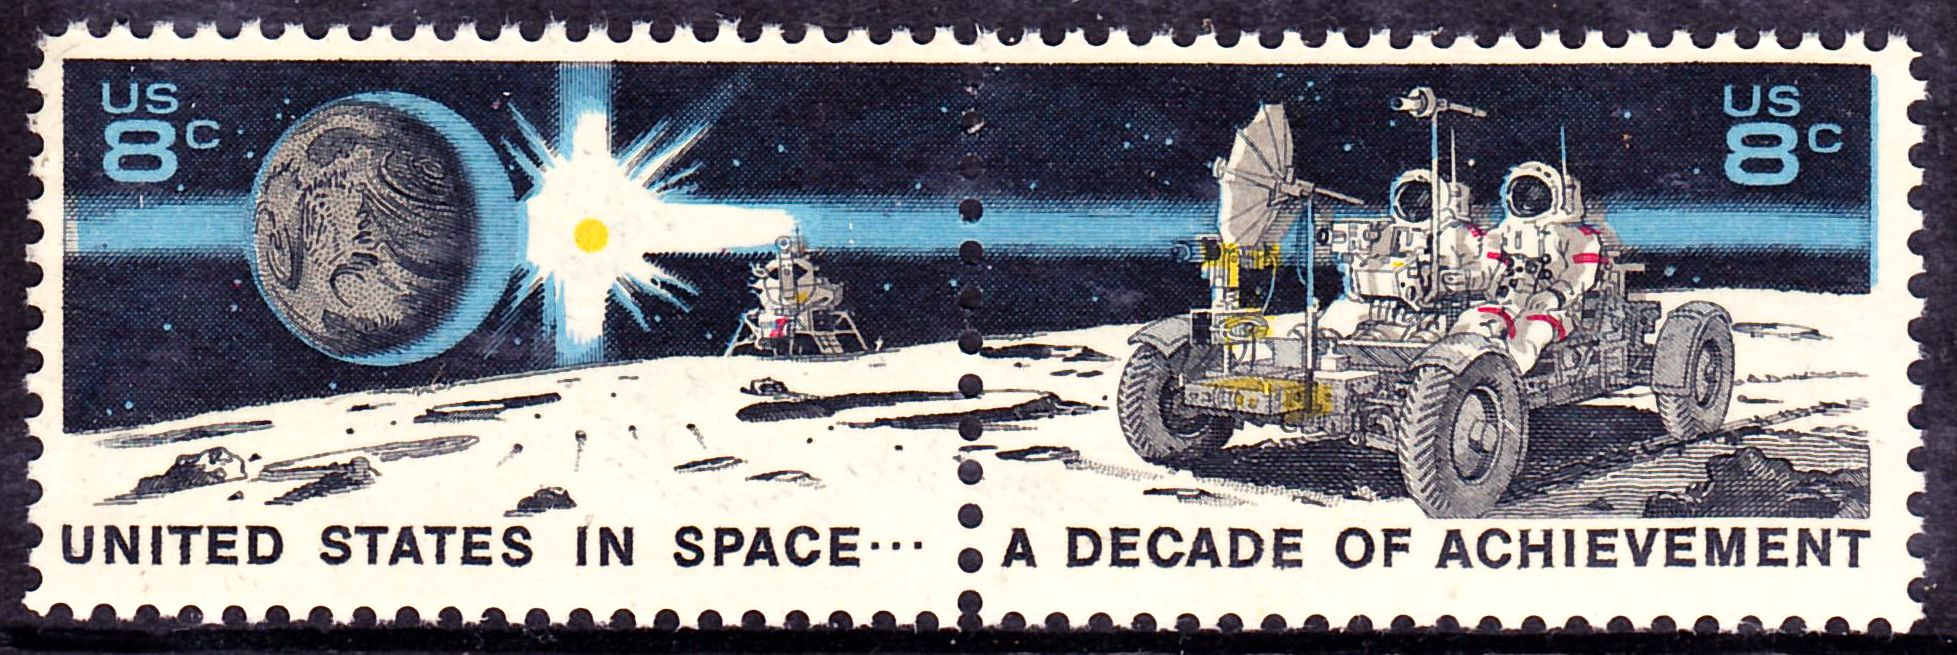 the first space shuttle on moon stamp - photo #42